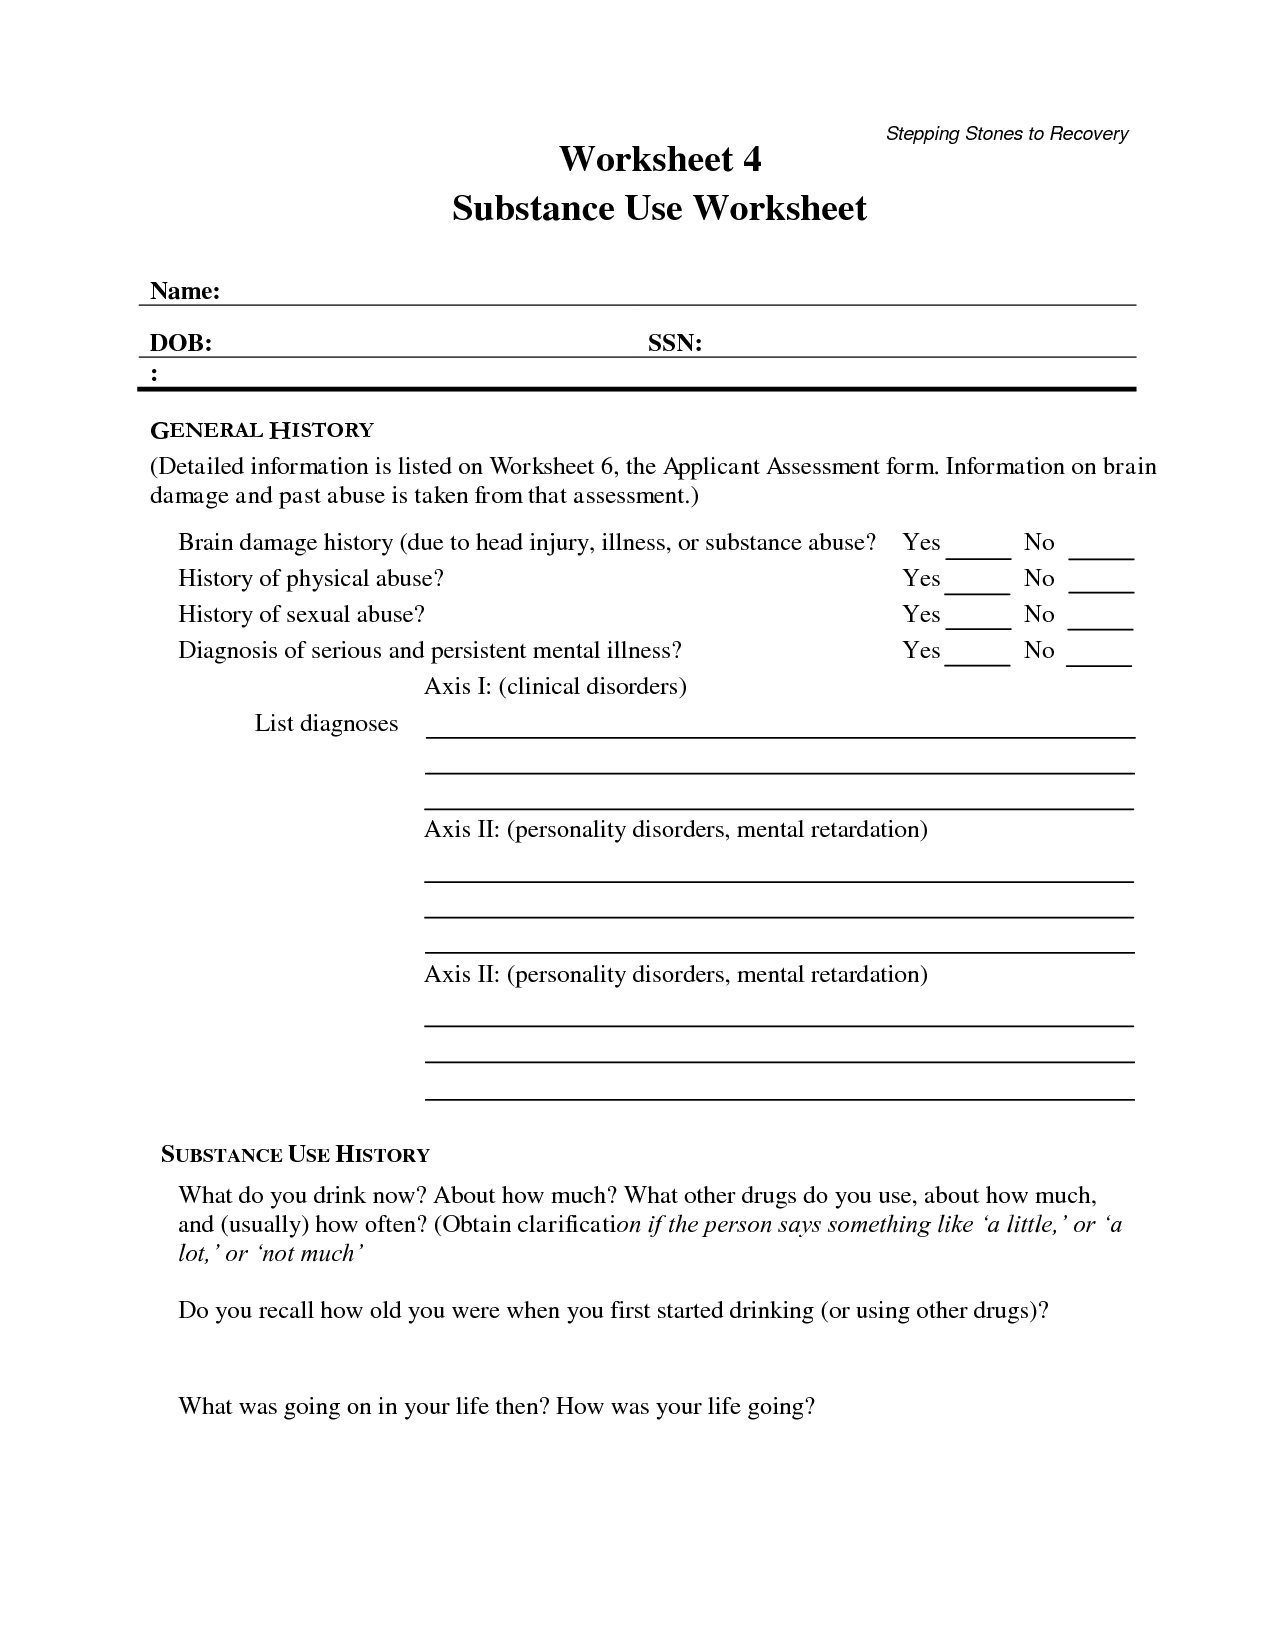 Self Help Worksheet Relapse Prevention